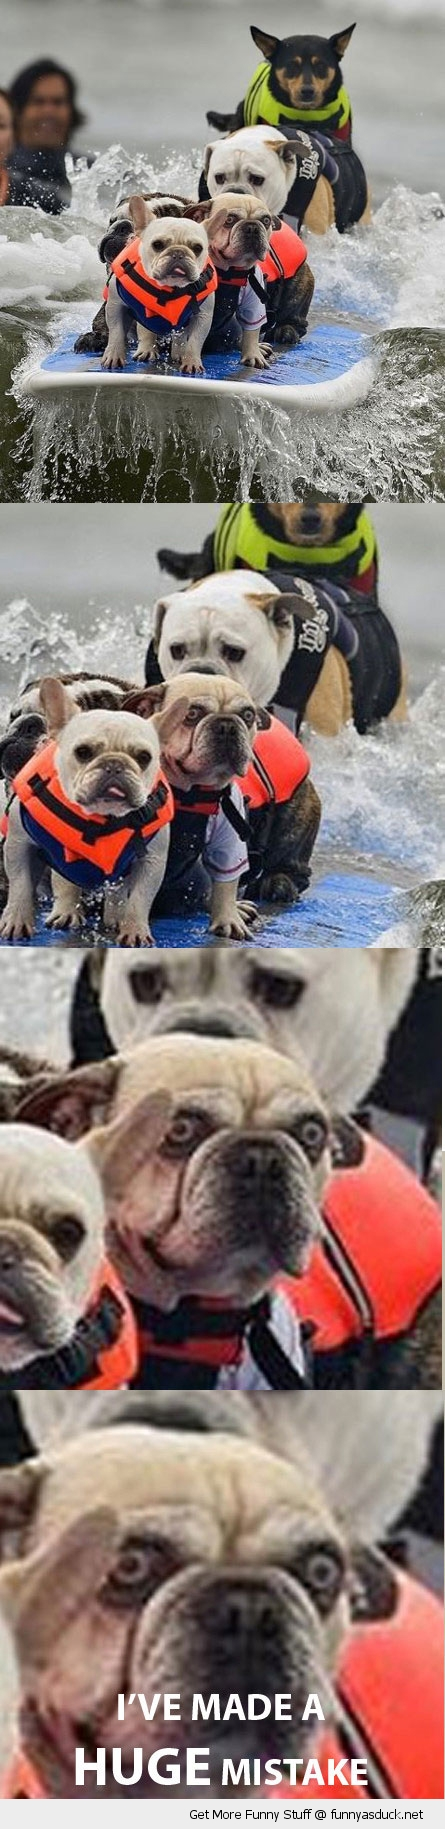 dogs on surfboard huge mistake scared animals funny pics pictures pic picture image photo images photos lol